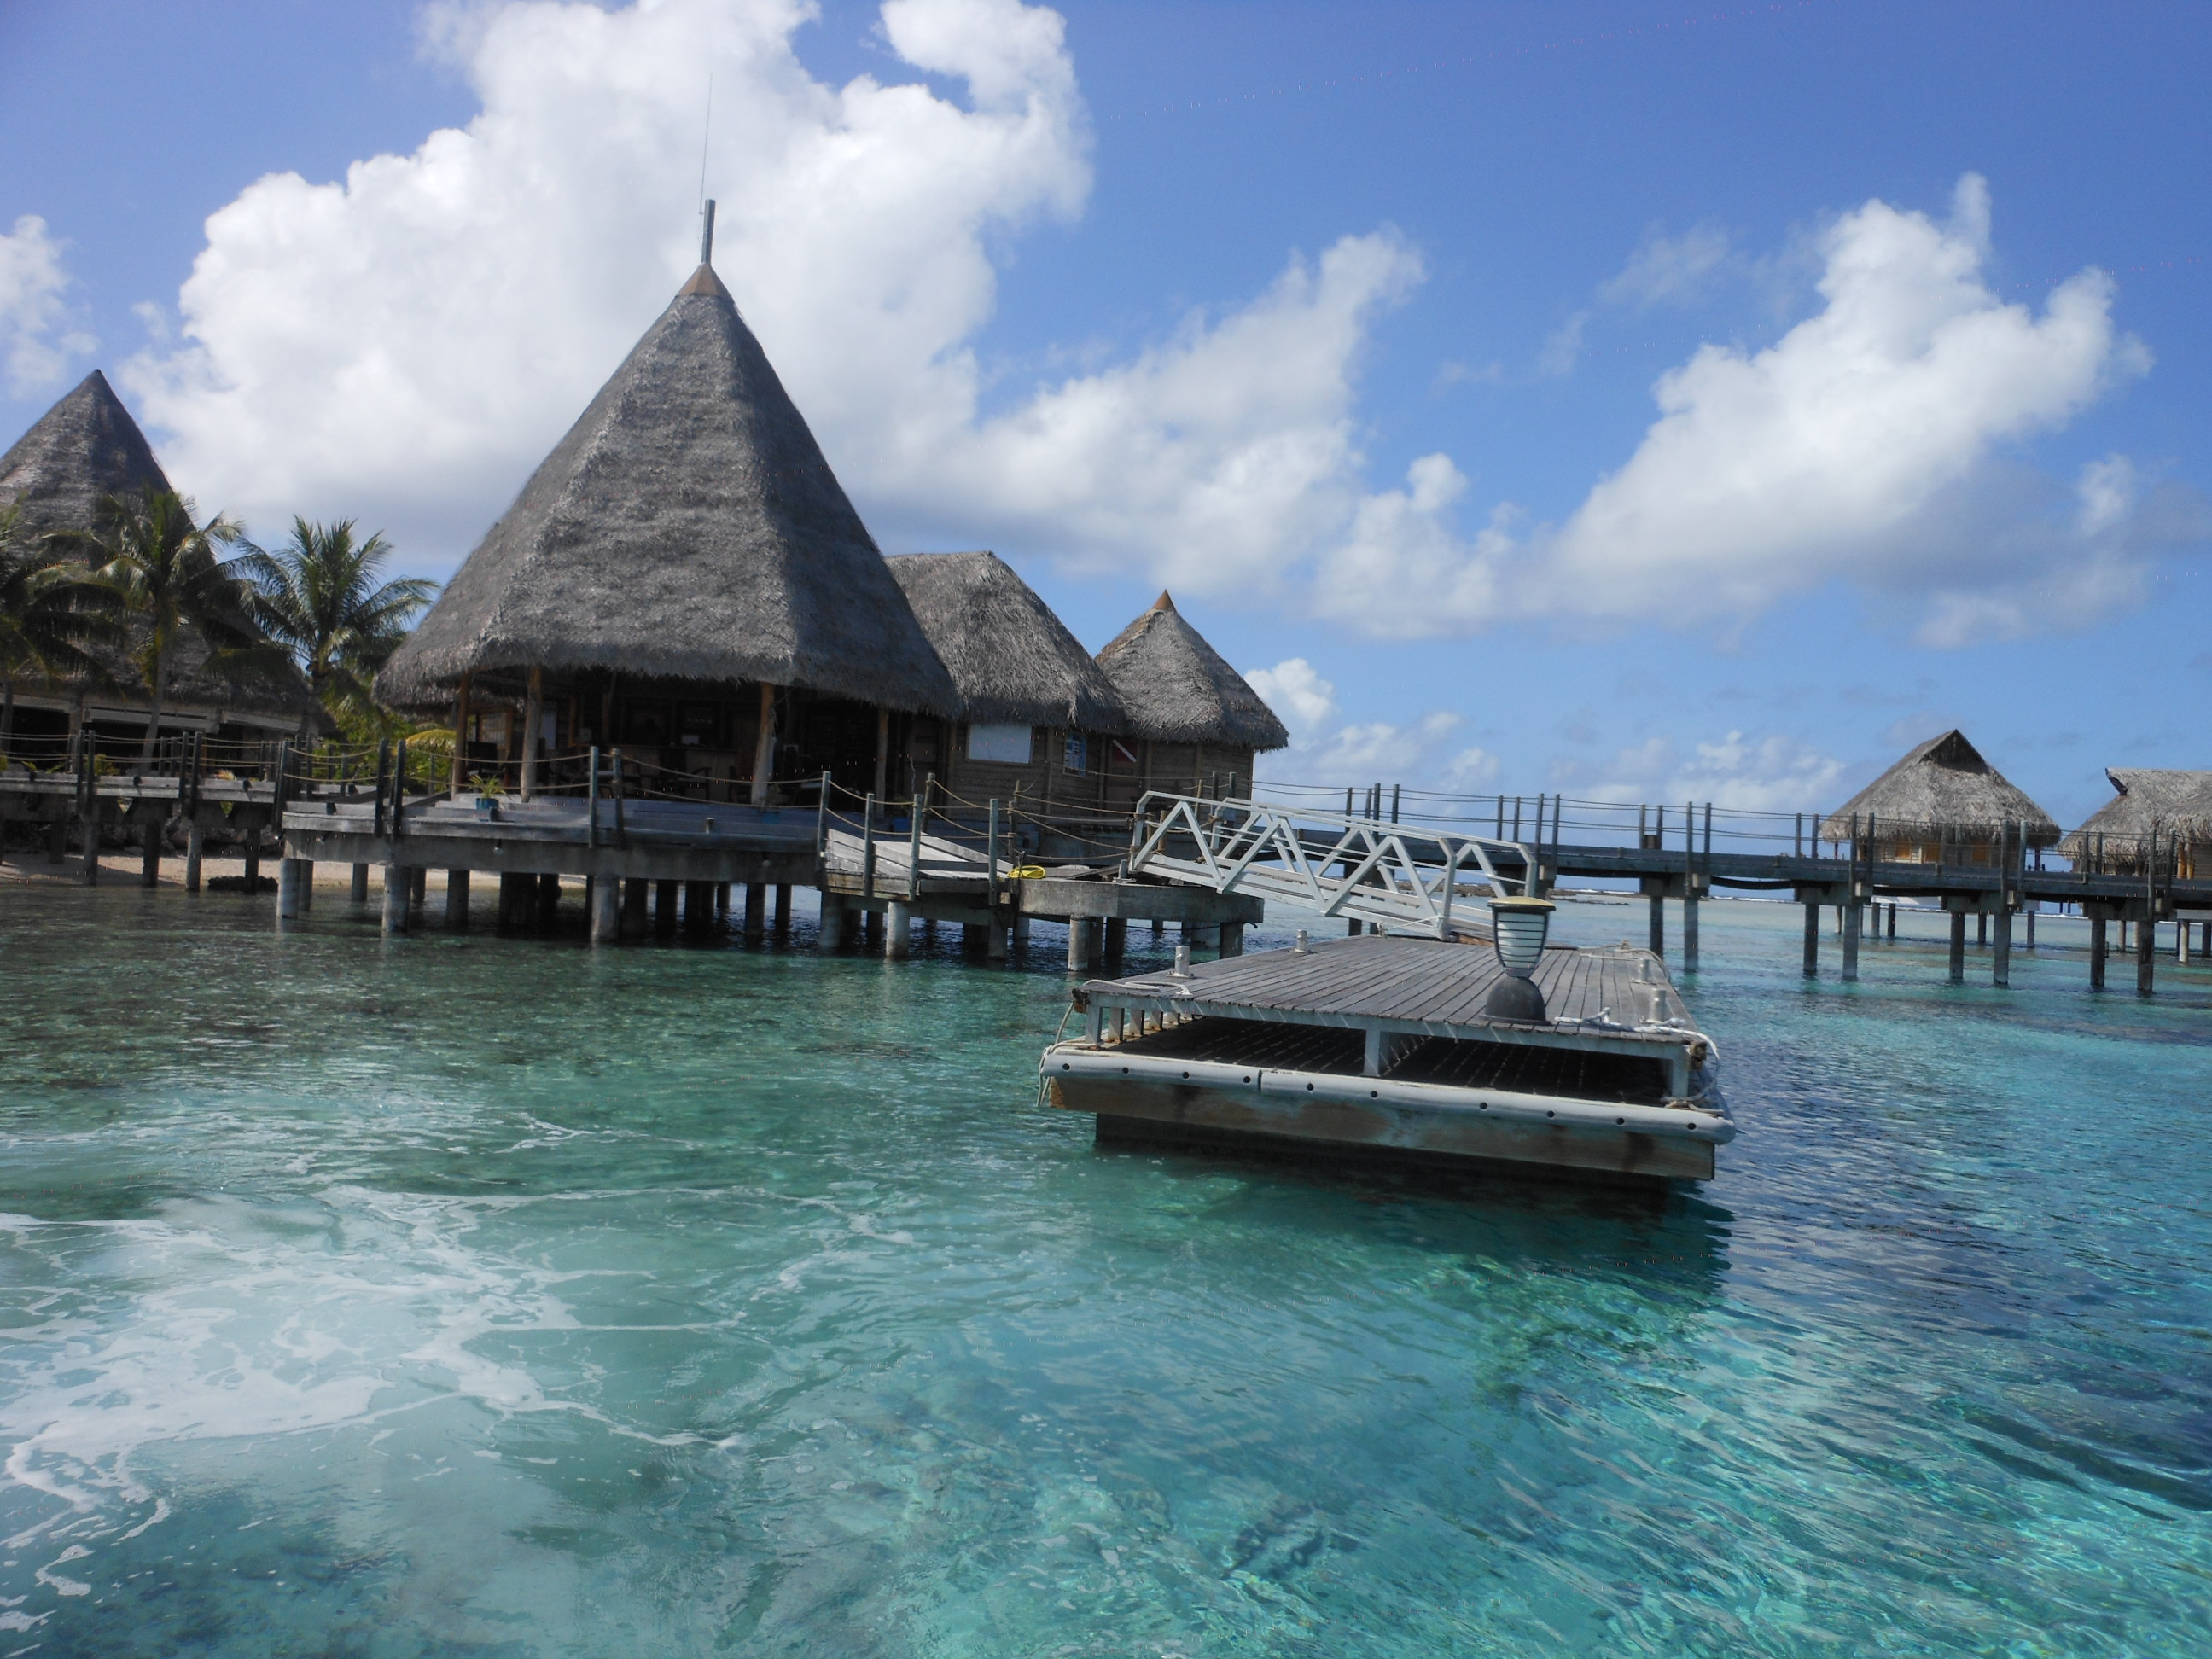 Kunngjøring ny all-inclusive plan for Bora Bora - Koble Reise